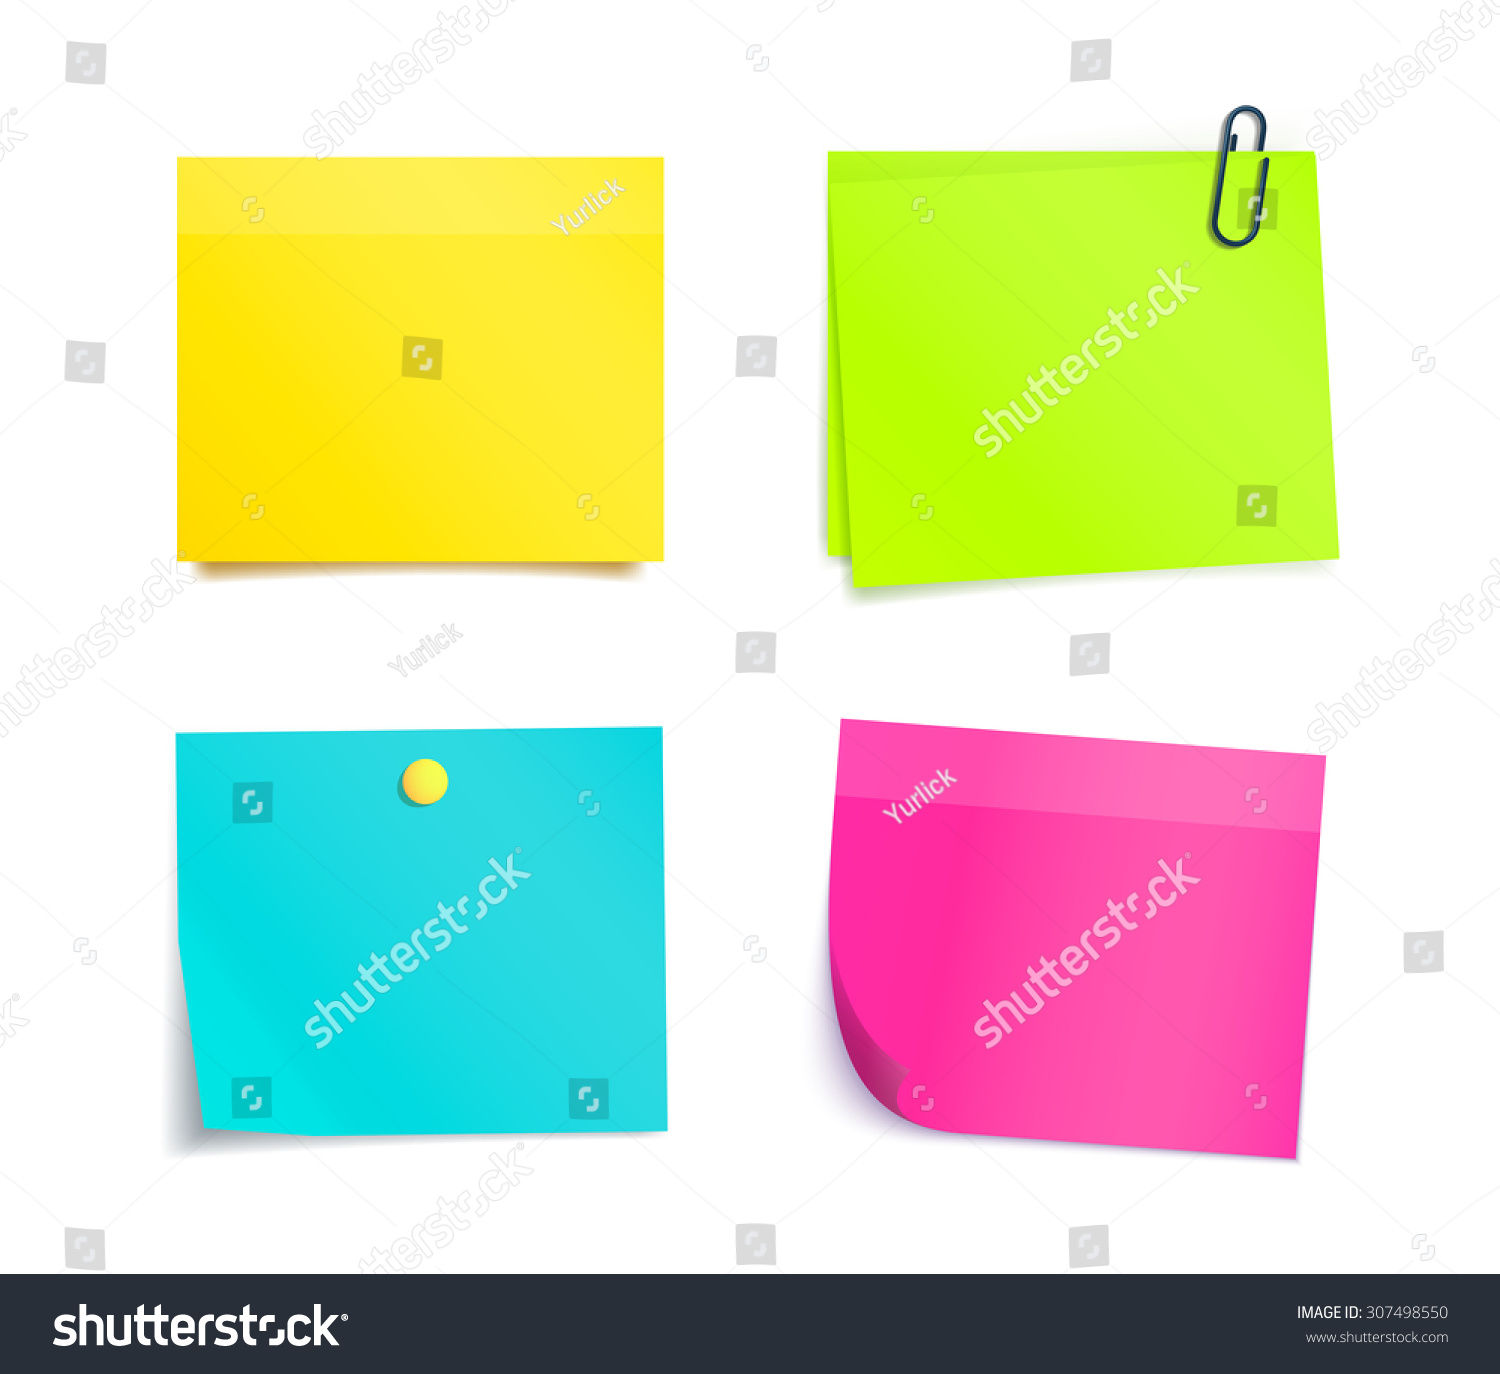 Colorful Blank Reminder Sticky Notes Isolated Stock Vector 307498550 ...